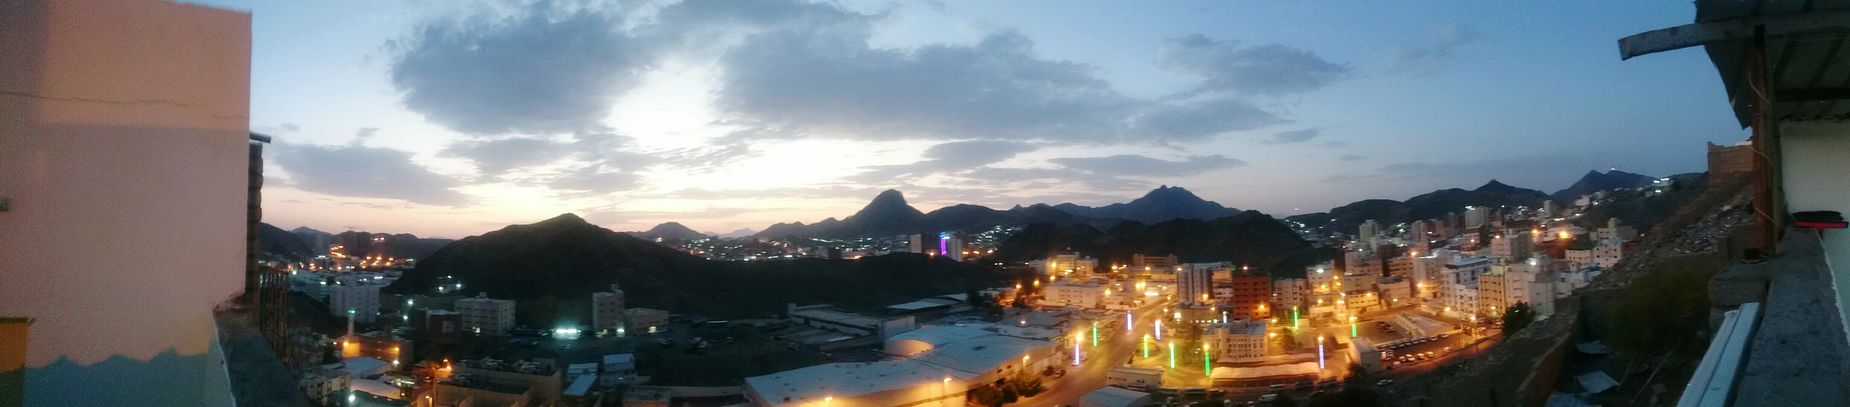 City Scape Sky Scape Panorama Clouds And Sky From My Garden Sony Z2 Photography Early Morning Makkah From My Point Of View Mountains